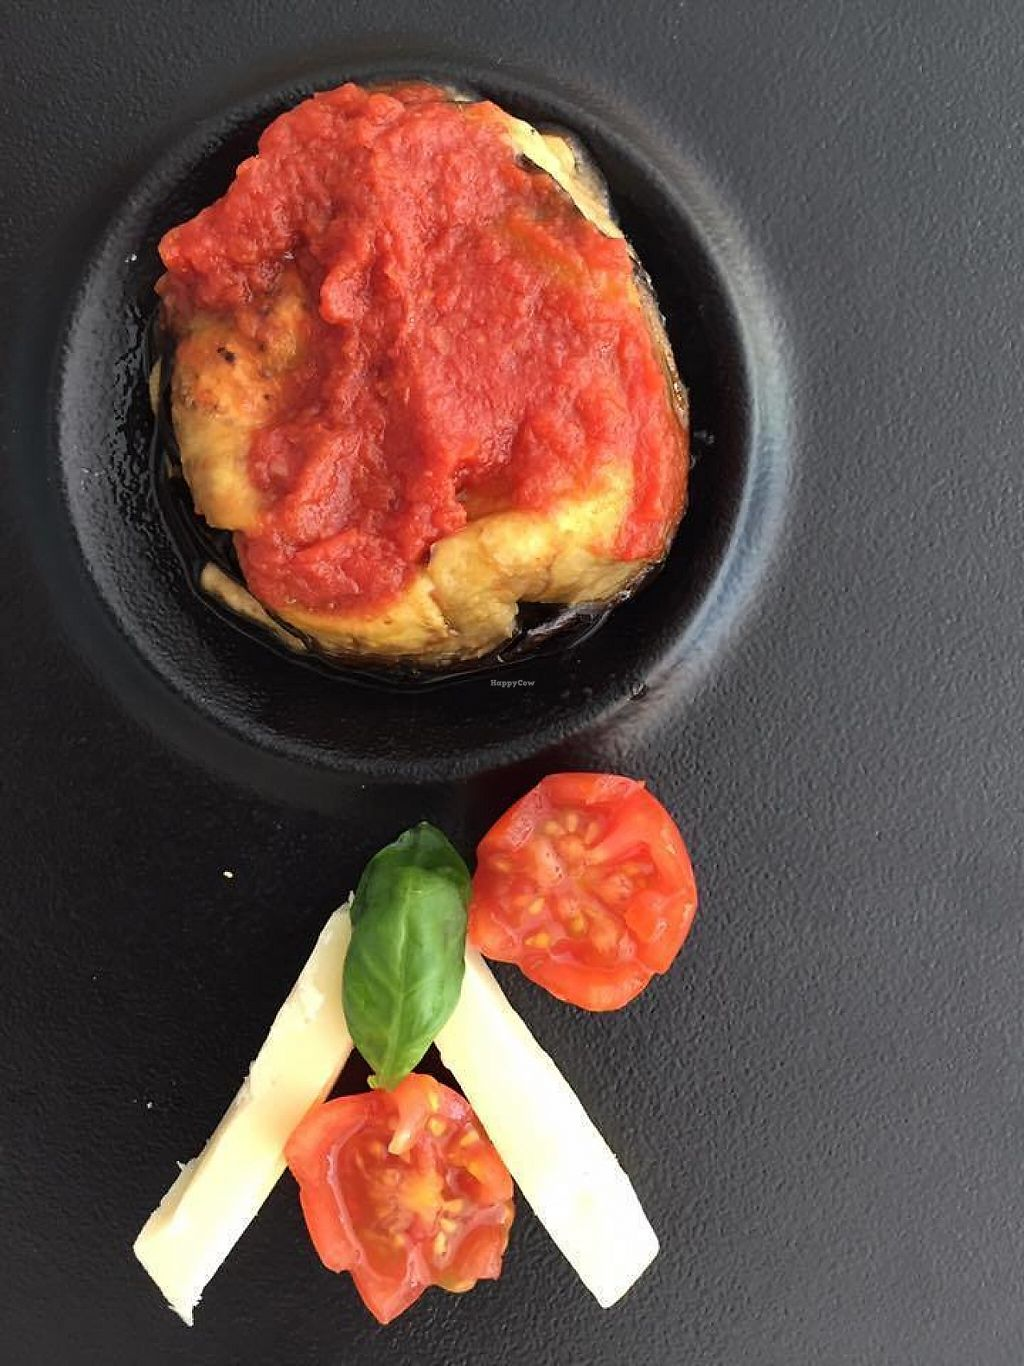 """Photo of Bianco Rosso & Verdure  by <a href=""""/members/profile/LucieS"""">LucieS</a> <br/>Aubergines, tomato sauce and amazing vegan cheese <br/> May 28, 2017  - <a href='/contact/abuse/image/79509/263321'>Report</a>"""